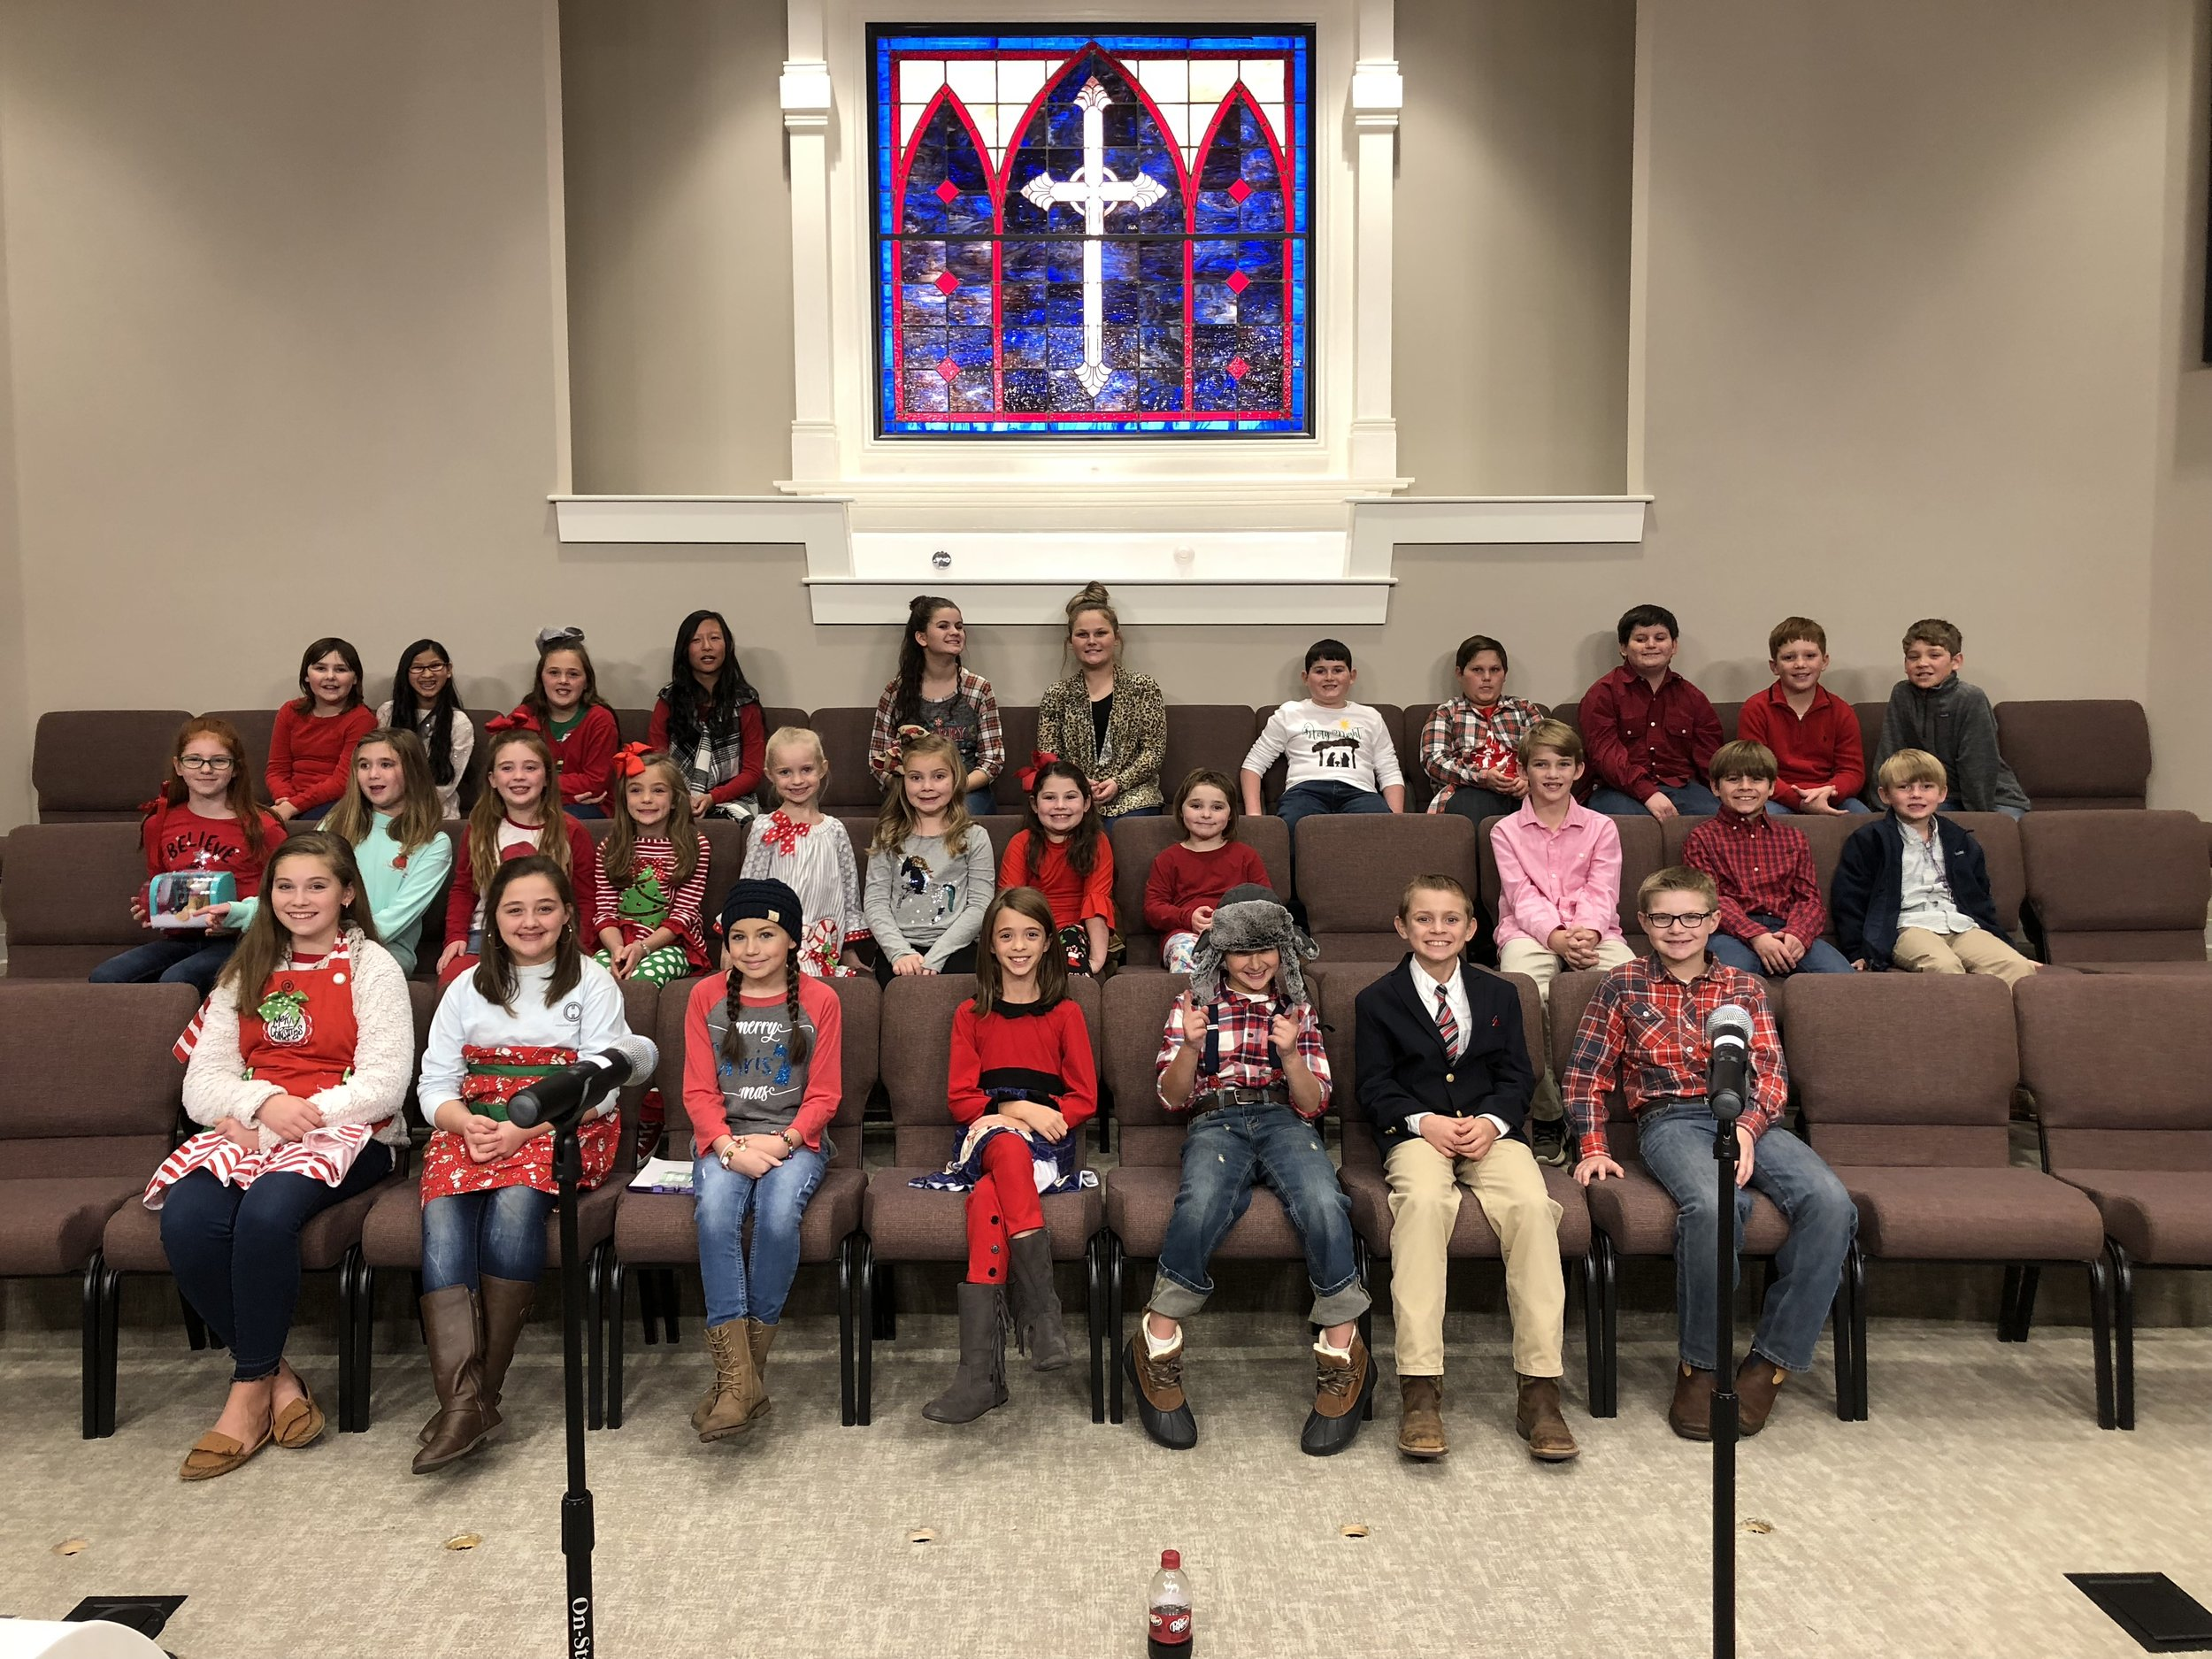 We help kids learn to be lifelong worshippers and to minister to others through song. - Rehearsals are held on Wednesdays at 6:15 PM during the months of August - December.